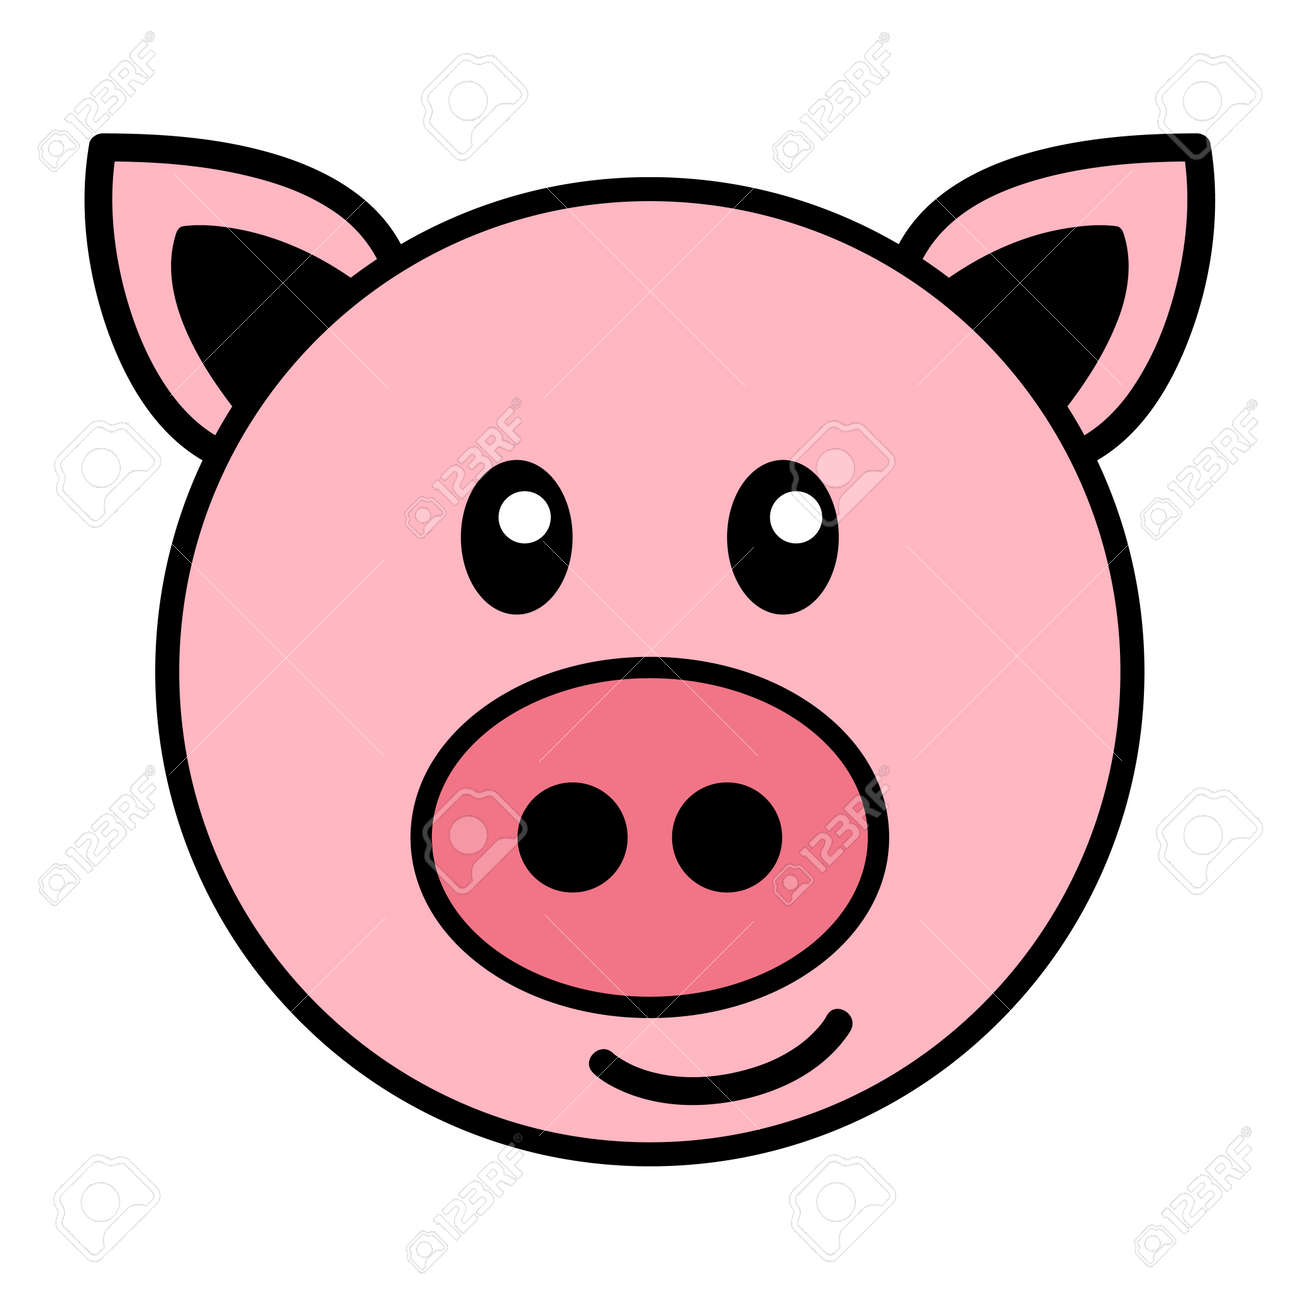 Simple Cartoon Of A Cute Pig Royalty Free Cliparts Vectors And Stock Illustration Image 51310406